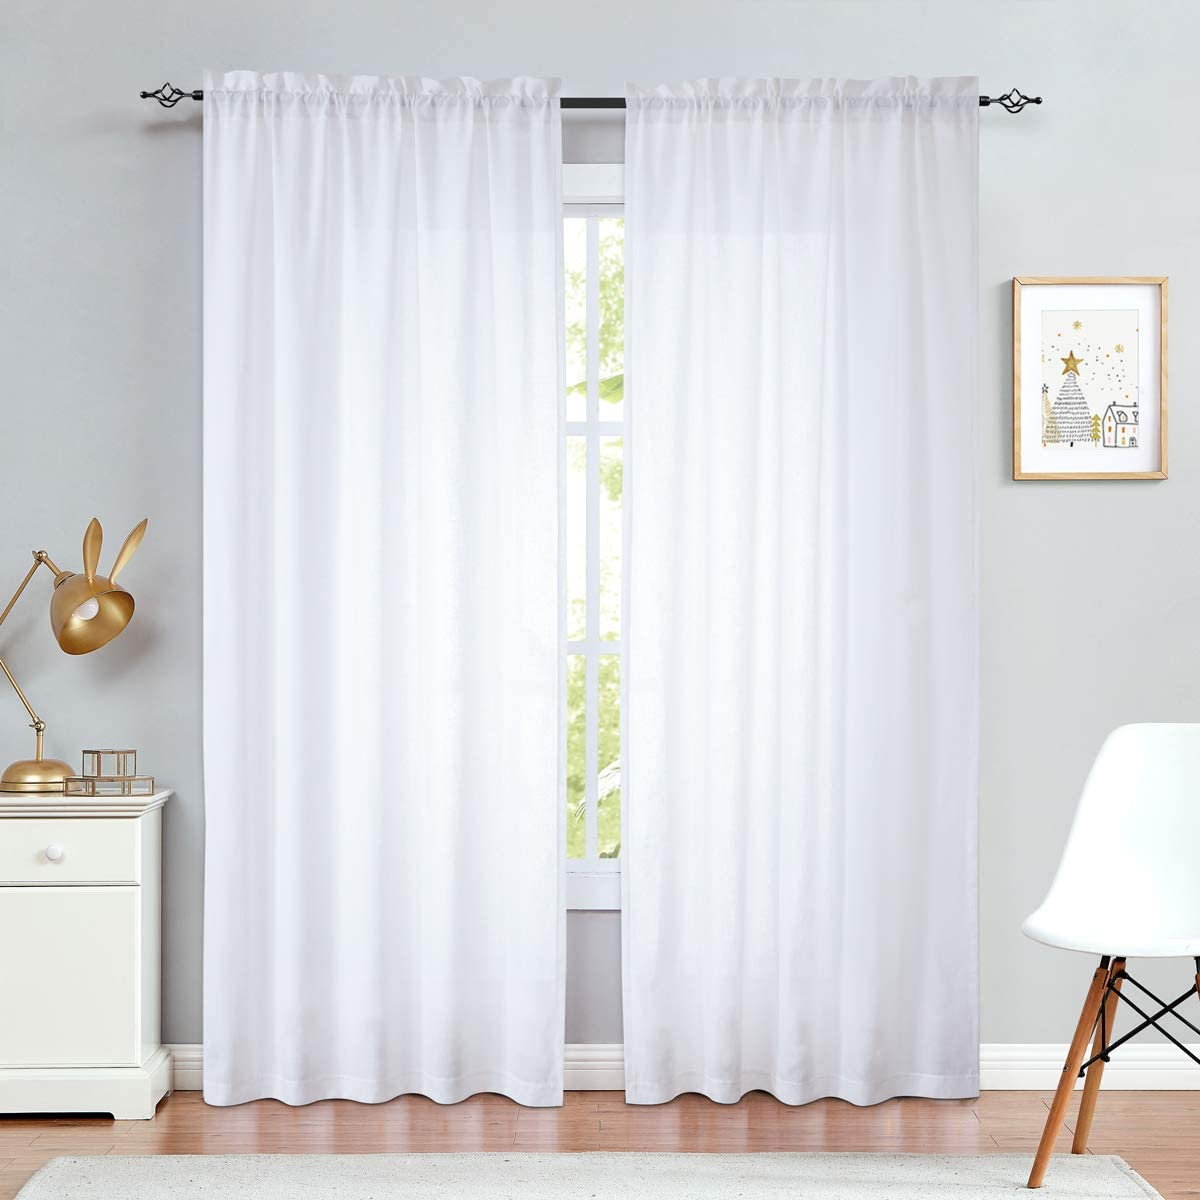 jinchan Linen Textured Curtains for Living Room Rod Pocket Light Filtering Window Treatment Set for Bedroom 2 Panels 84 inch Long White